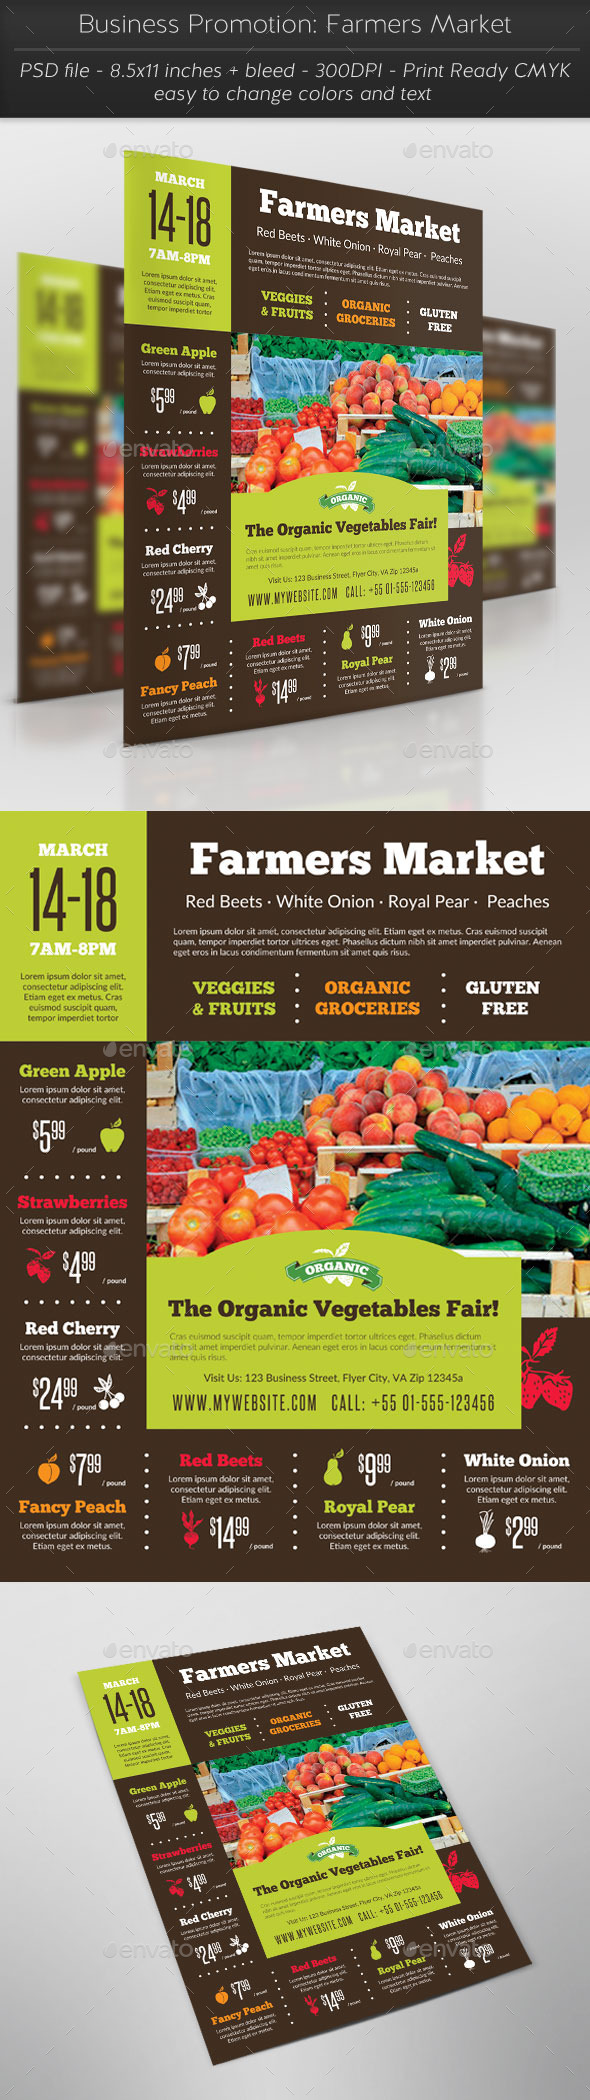 Business Promotion: Farmers Market - Commerce Flyers